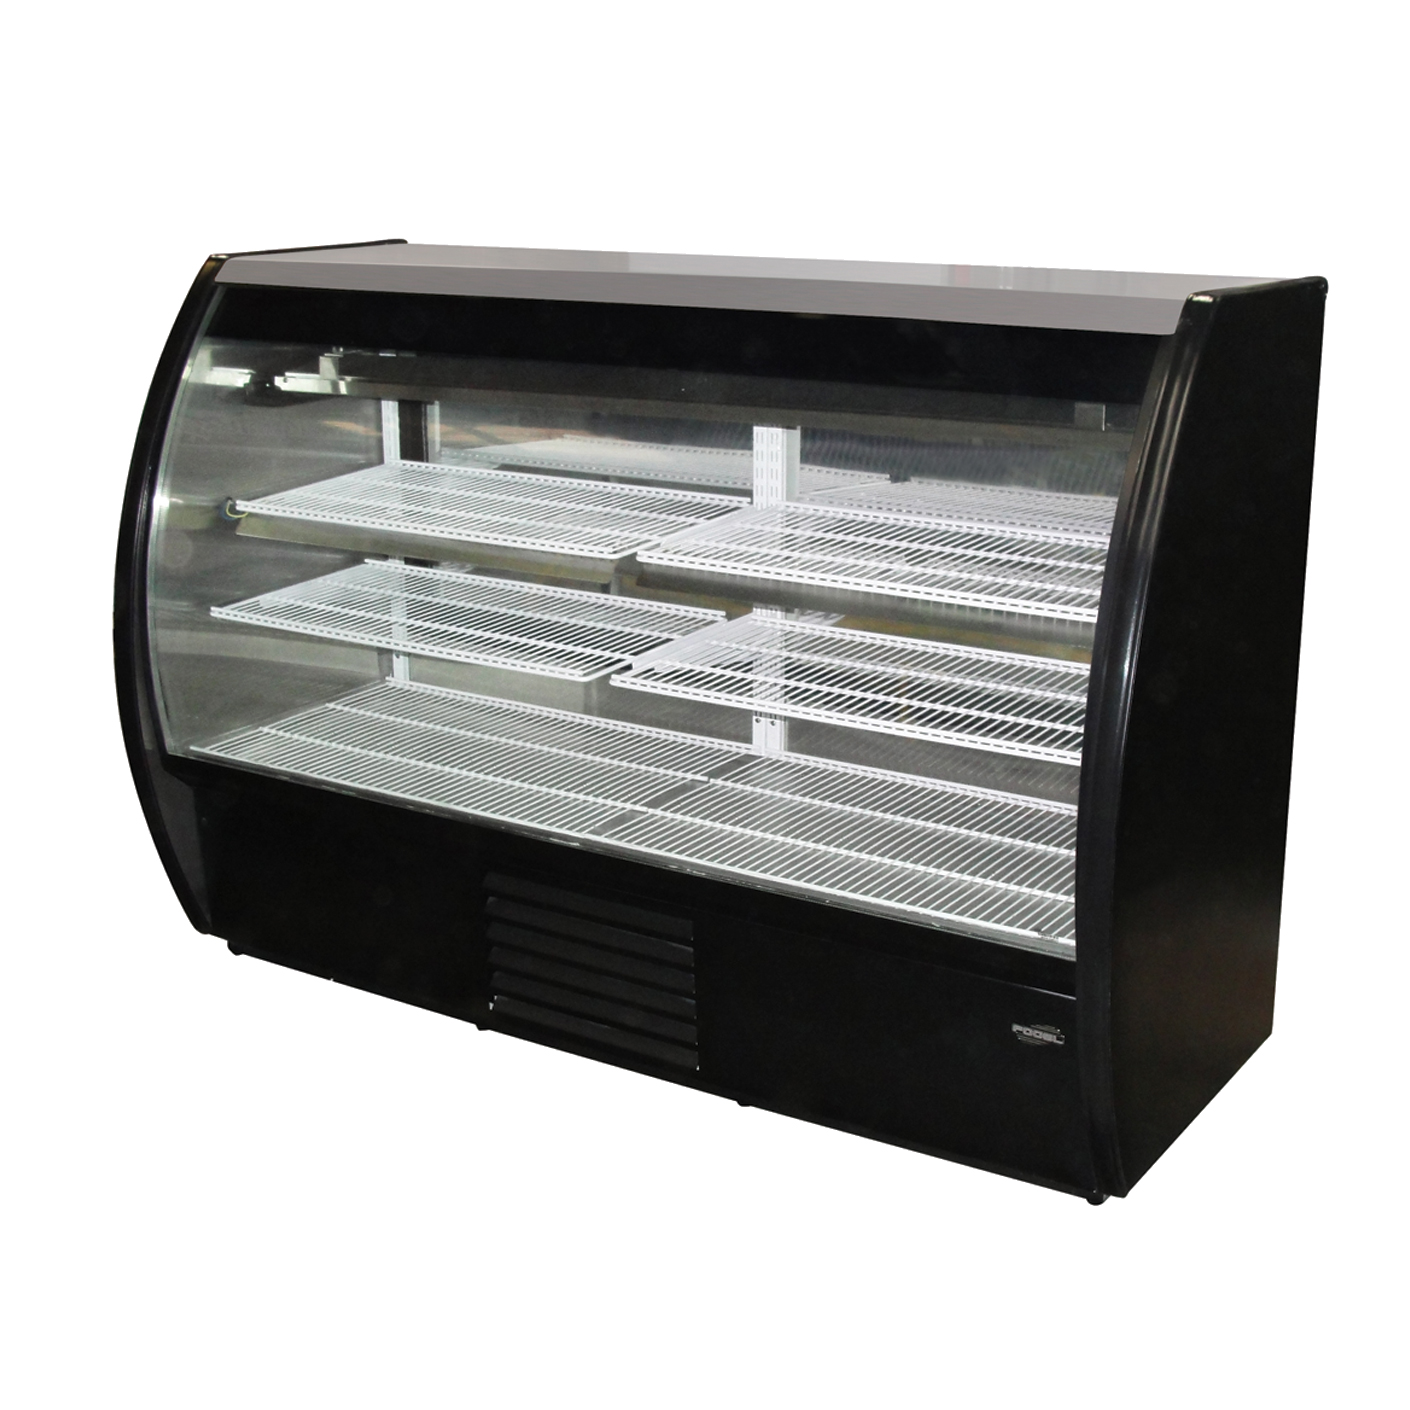 Fogel USA MIRAGE-6-DC-B display case, refrigerated deli